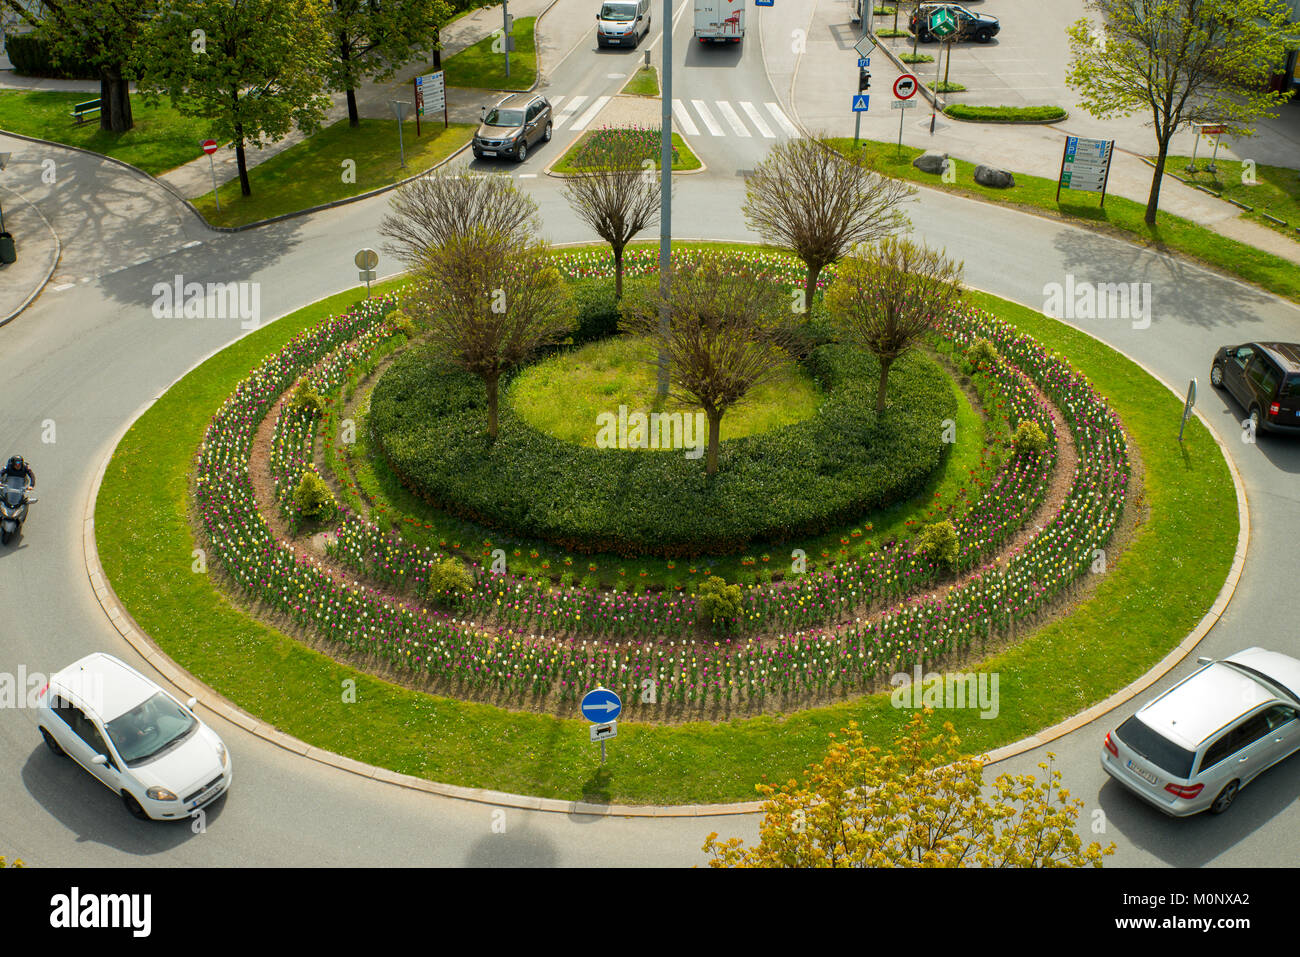 Roundabout federal highway B171,junction autobahn access road,federal highway B171,junction autobahn access road,Schwaz - Stock Image